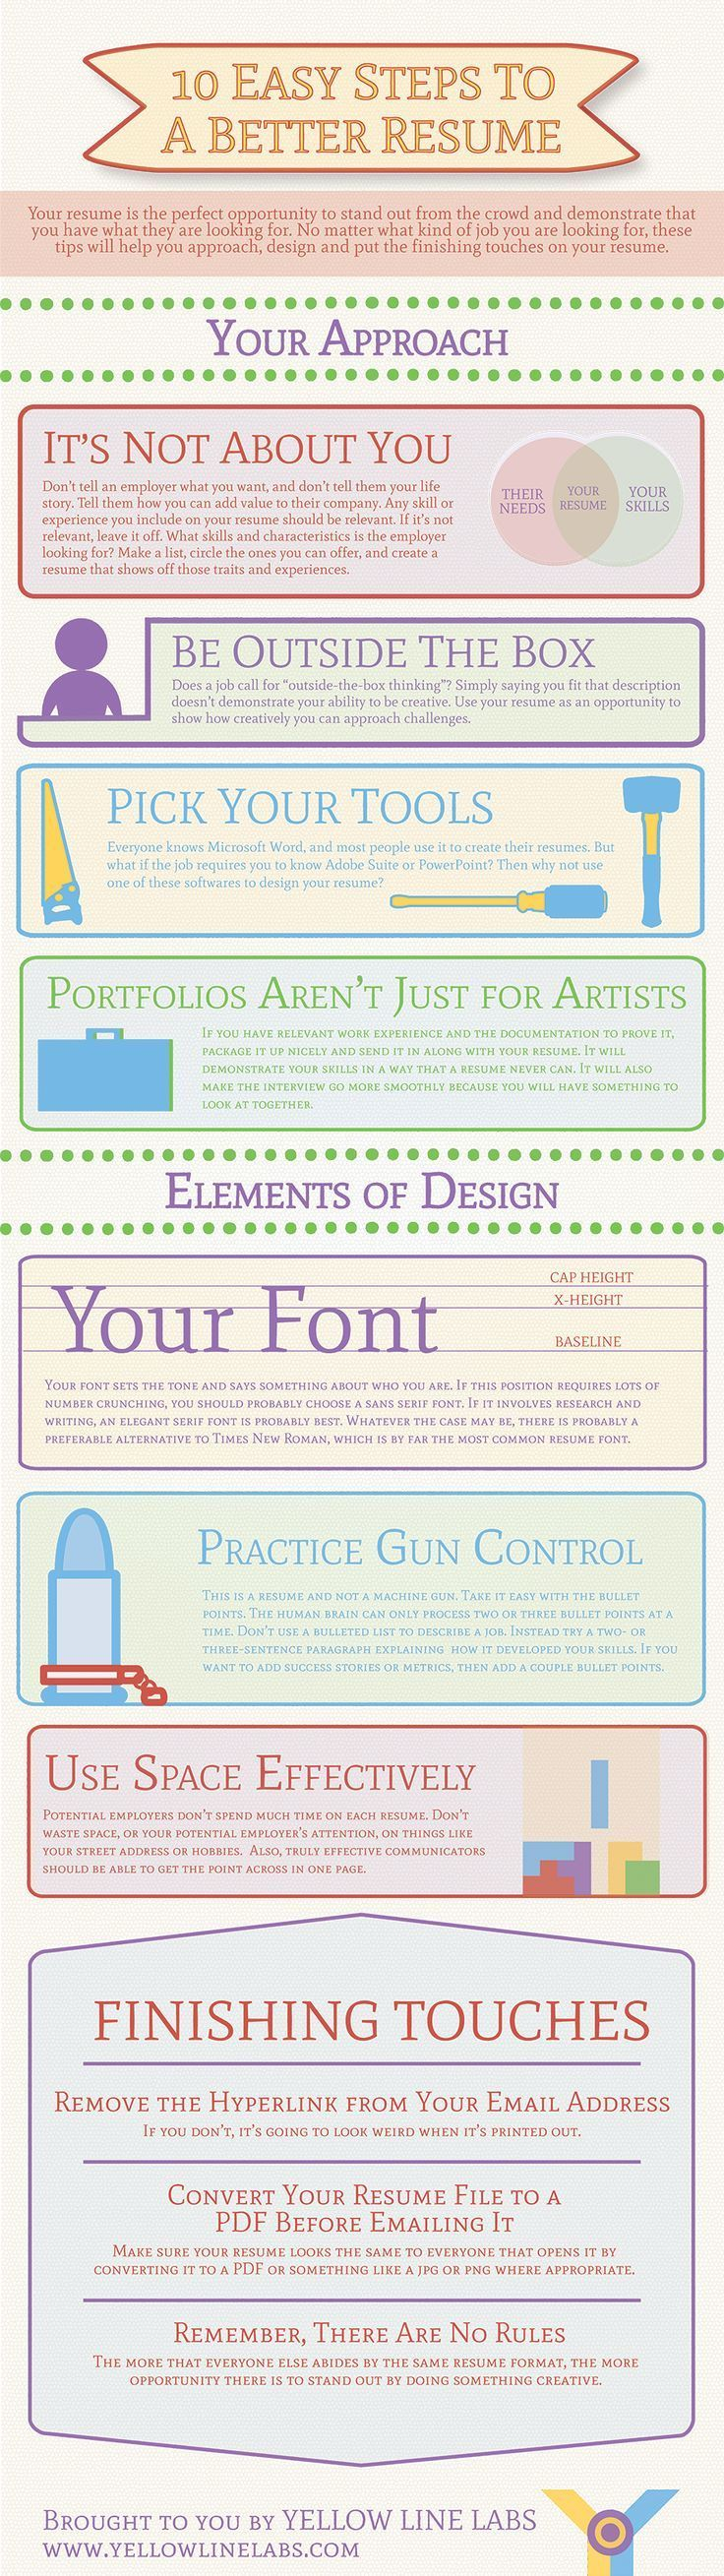 SurveyAnalytics Blog: Top 5 Infographics of the Week: Tips for a ...